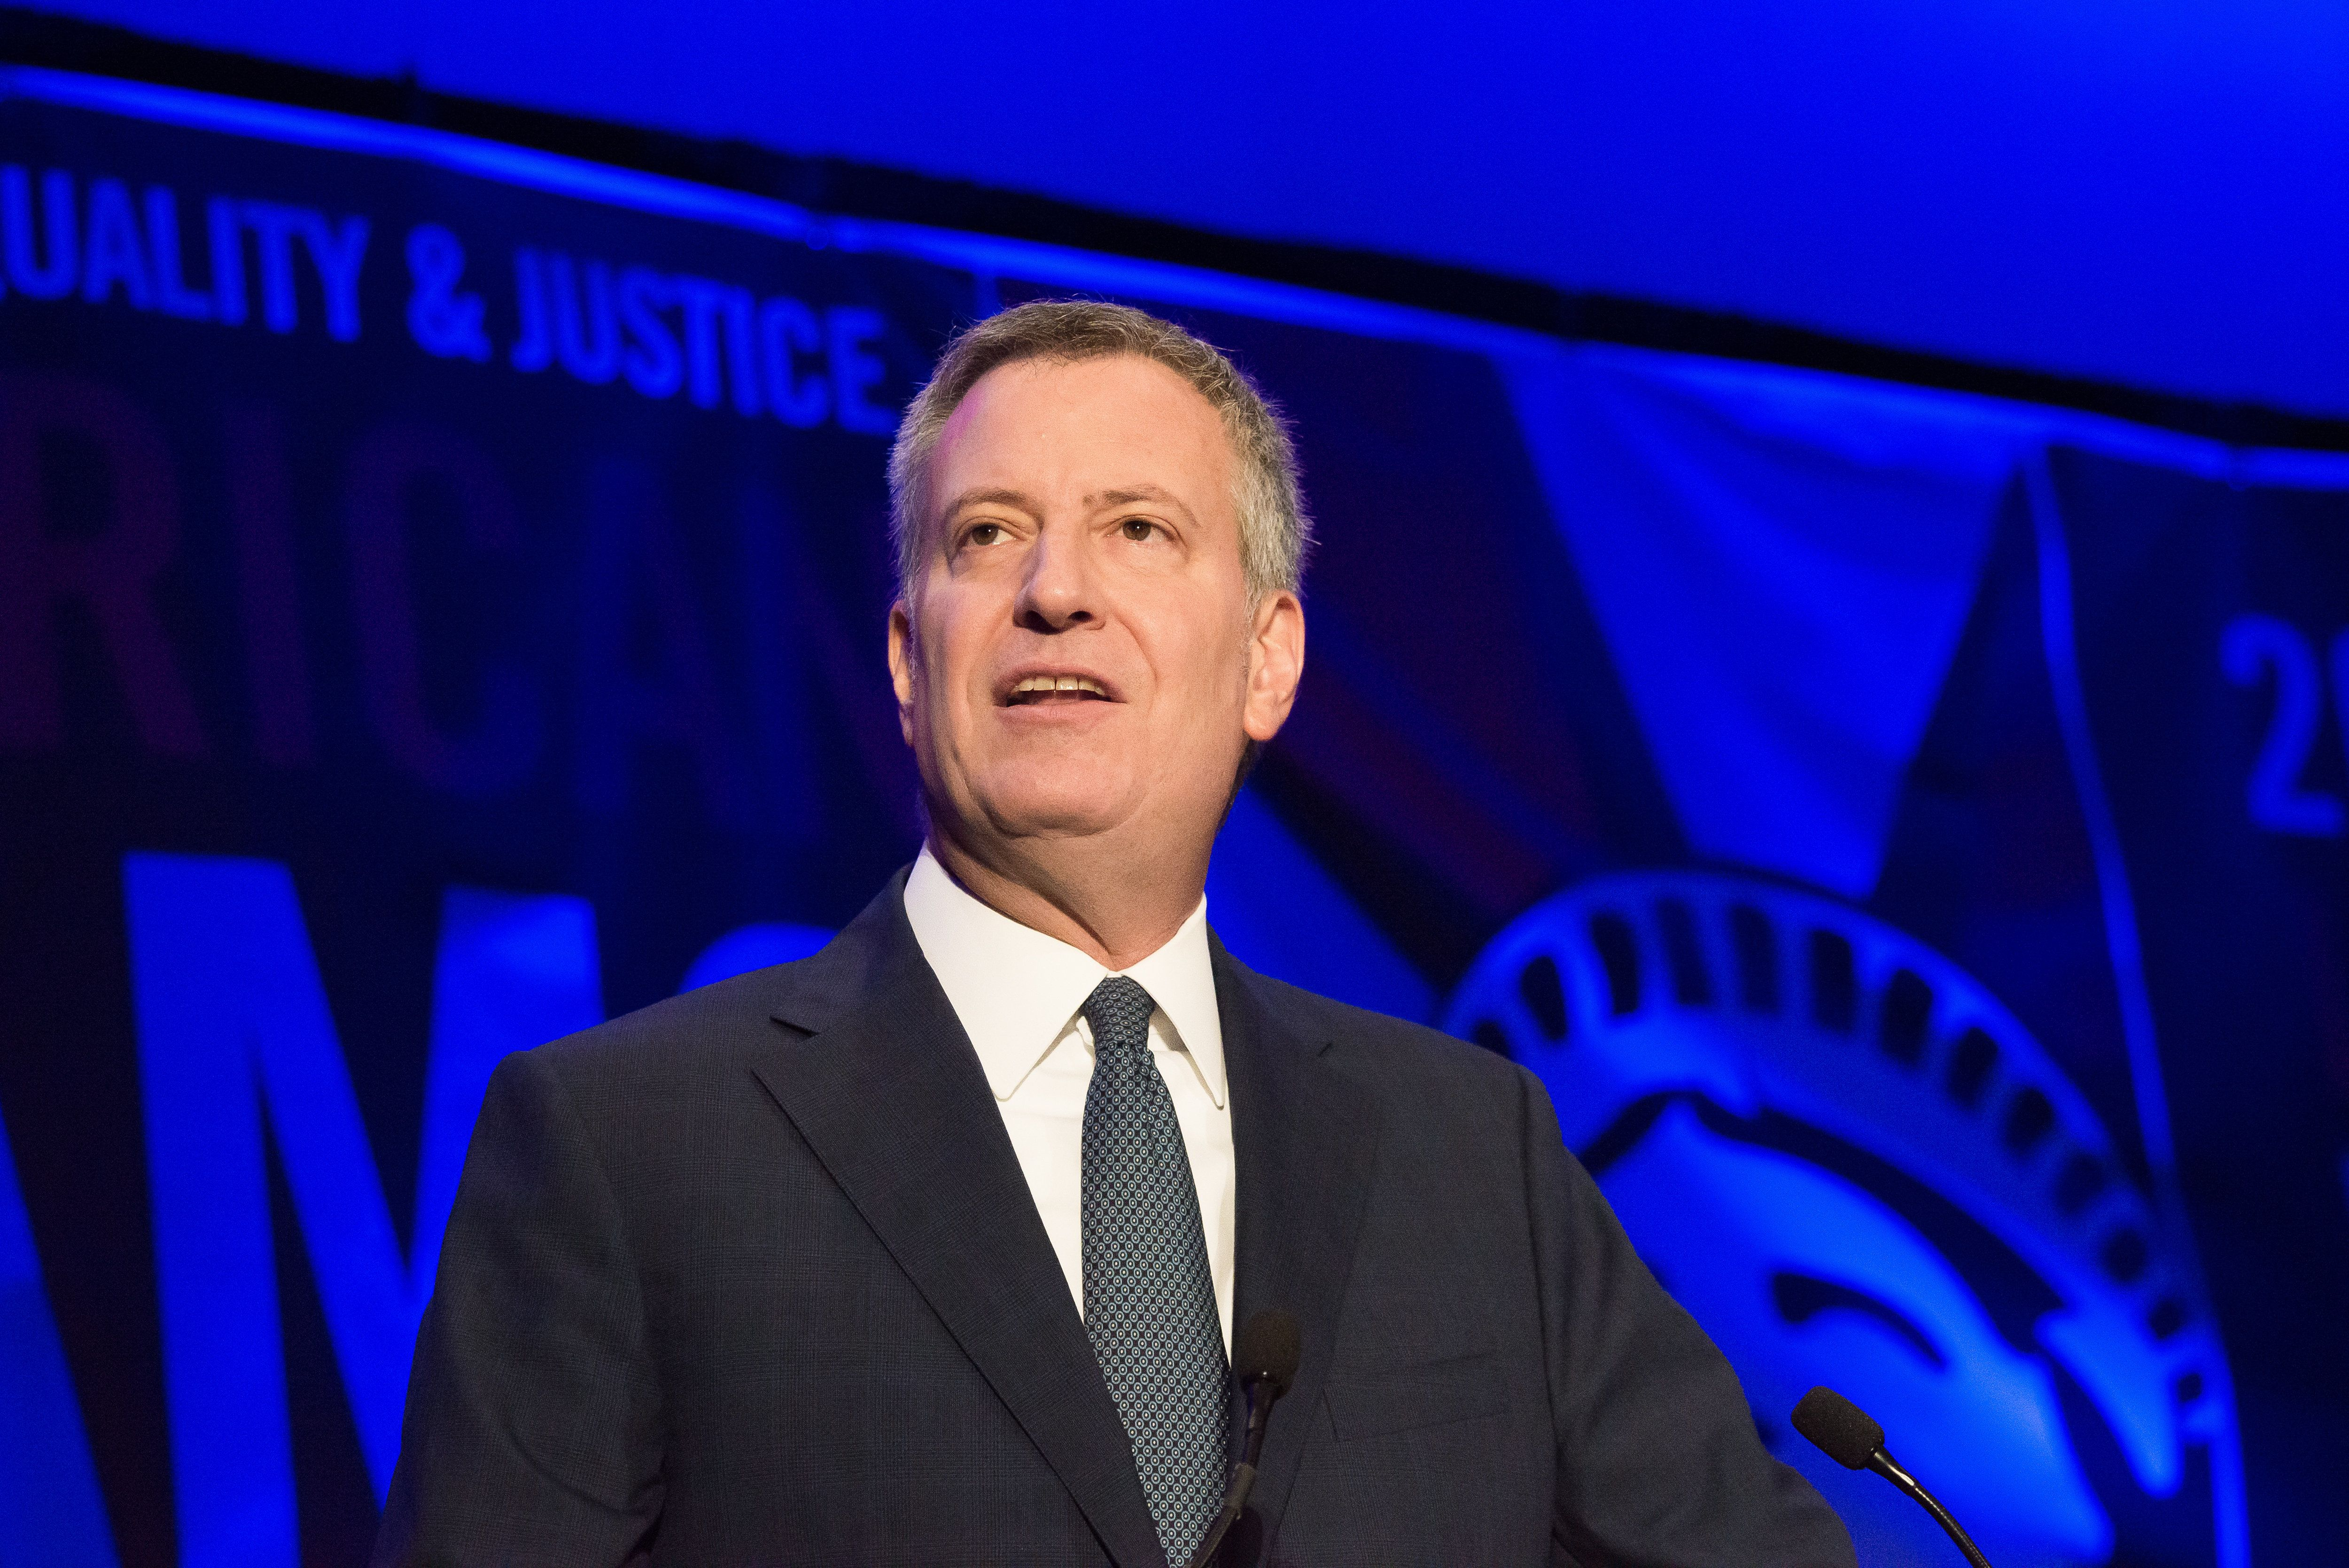 New York Mayor Billde Blasio (D) helped organize an amicus brief in support of the president's deportation relief progr